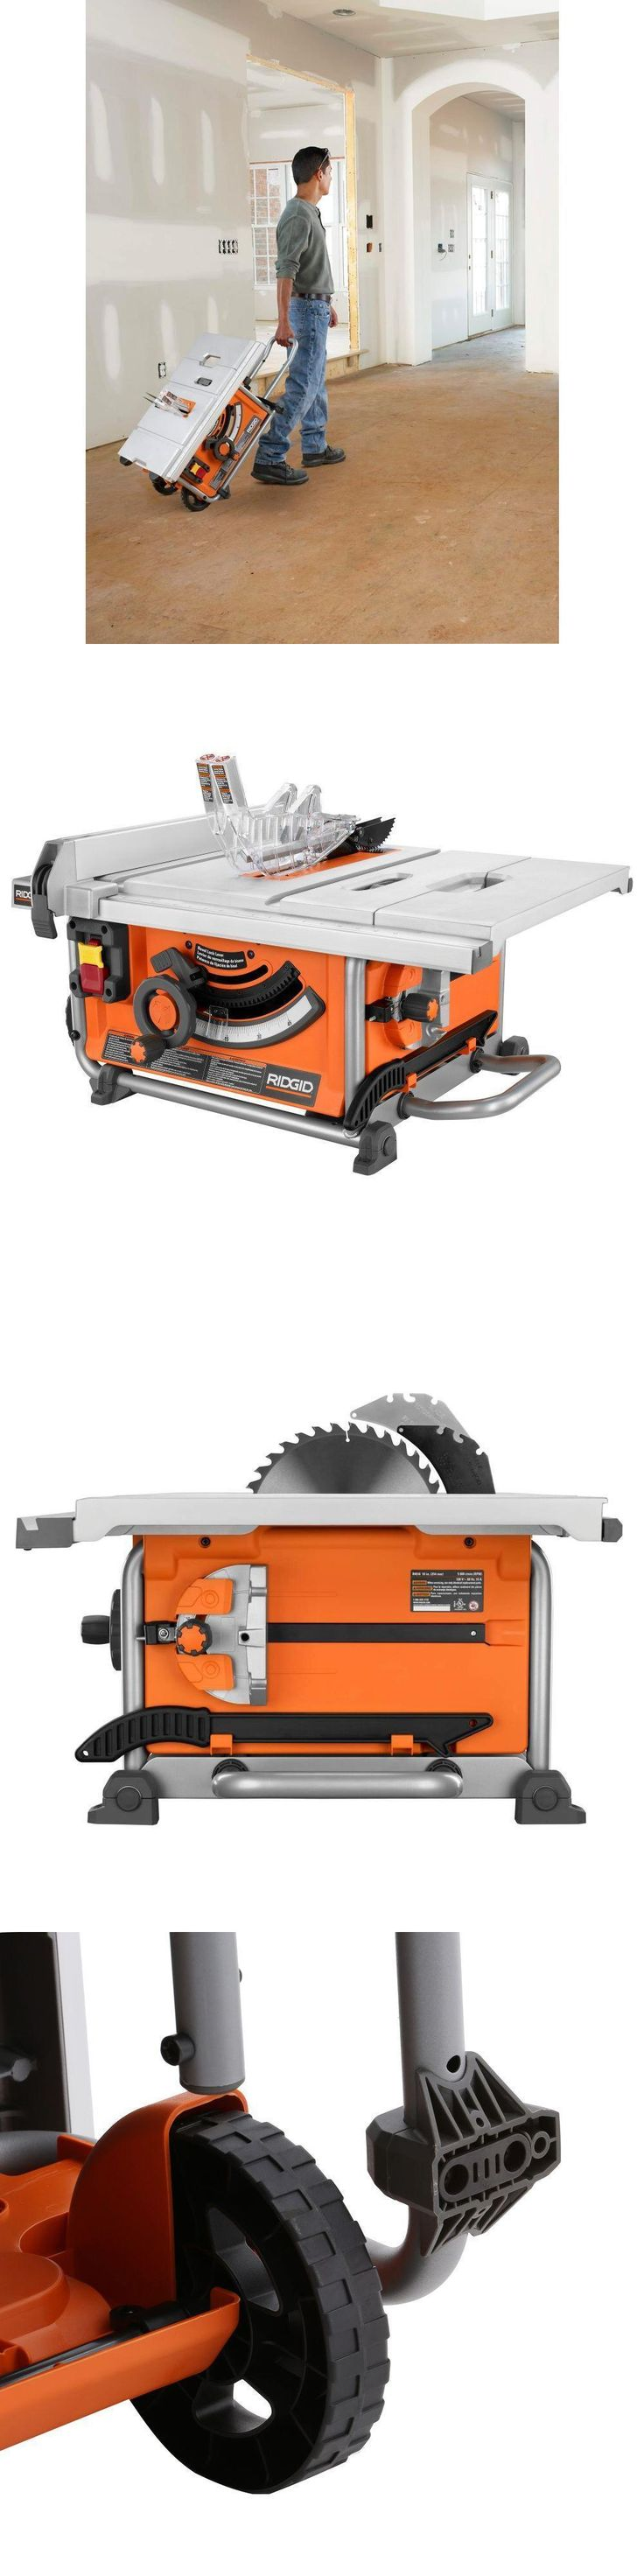 Table Saws 122835: Rigid Compact Table Saw 15 Amp 10 In. Heavy Duty Portable Power Tool -> BUY IT NOW ONLY: $297 on eBay!